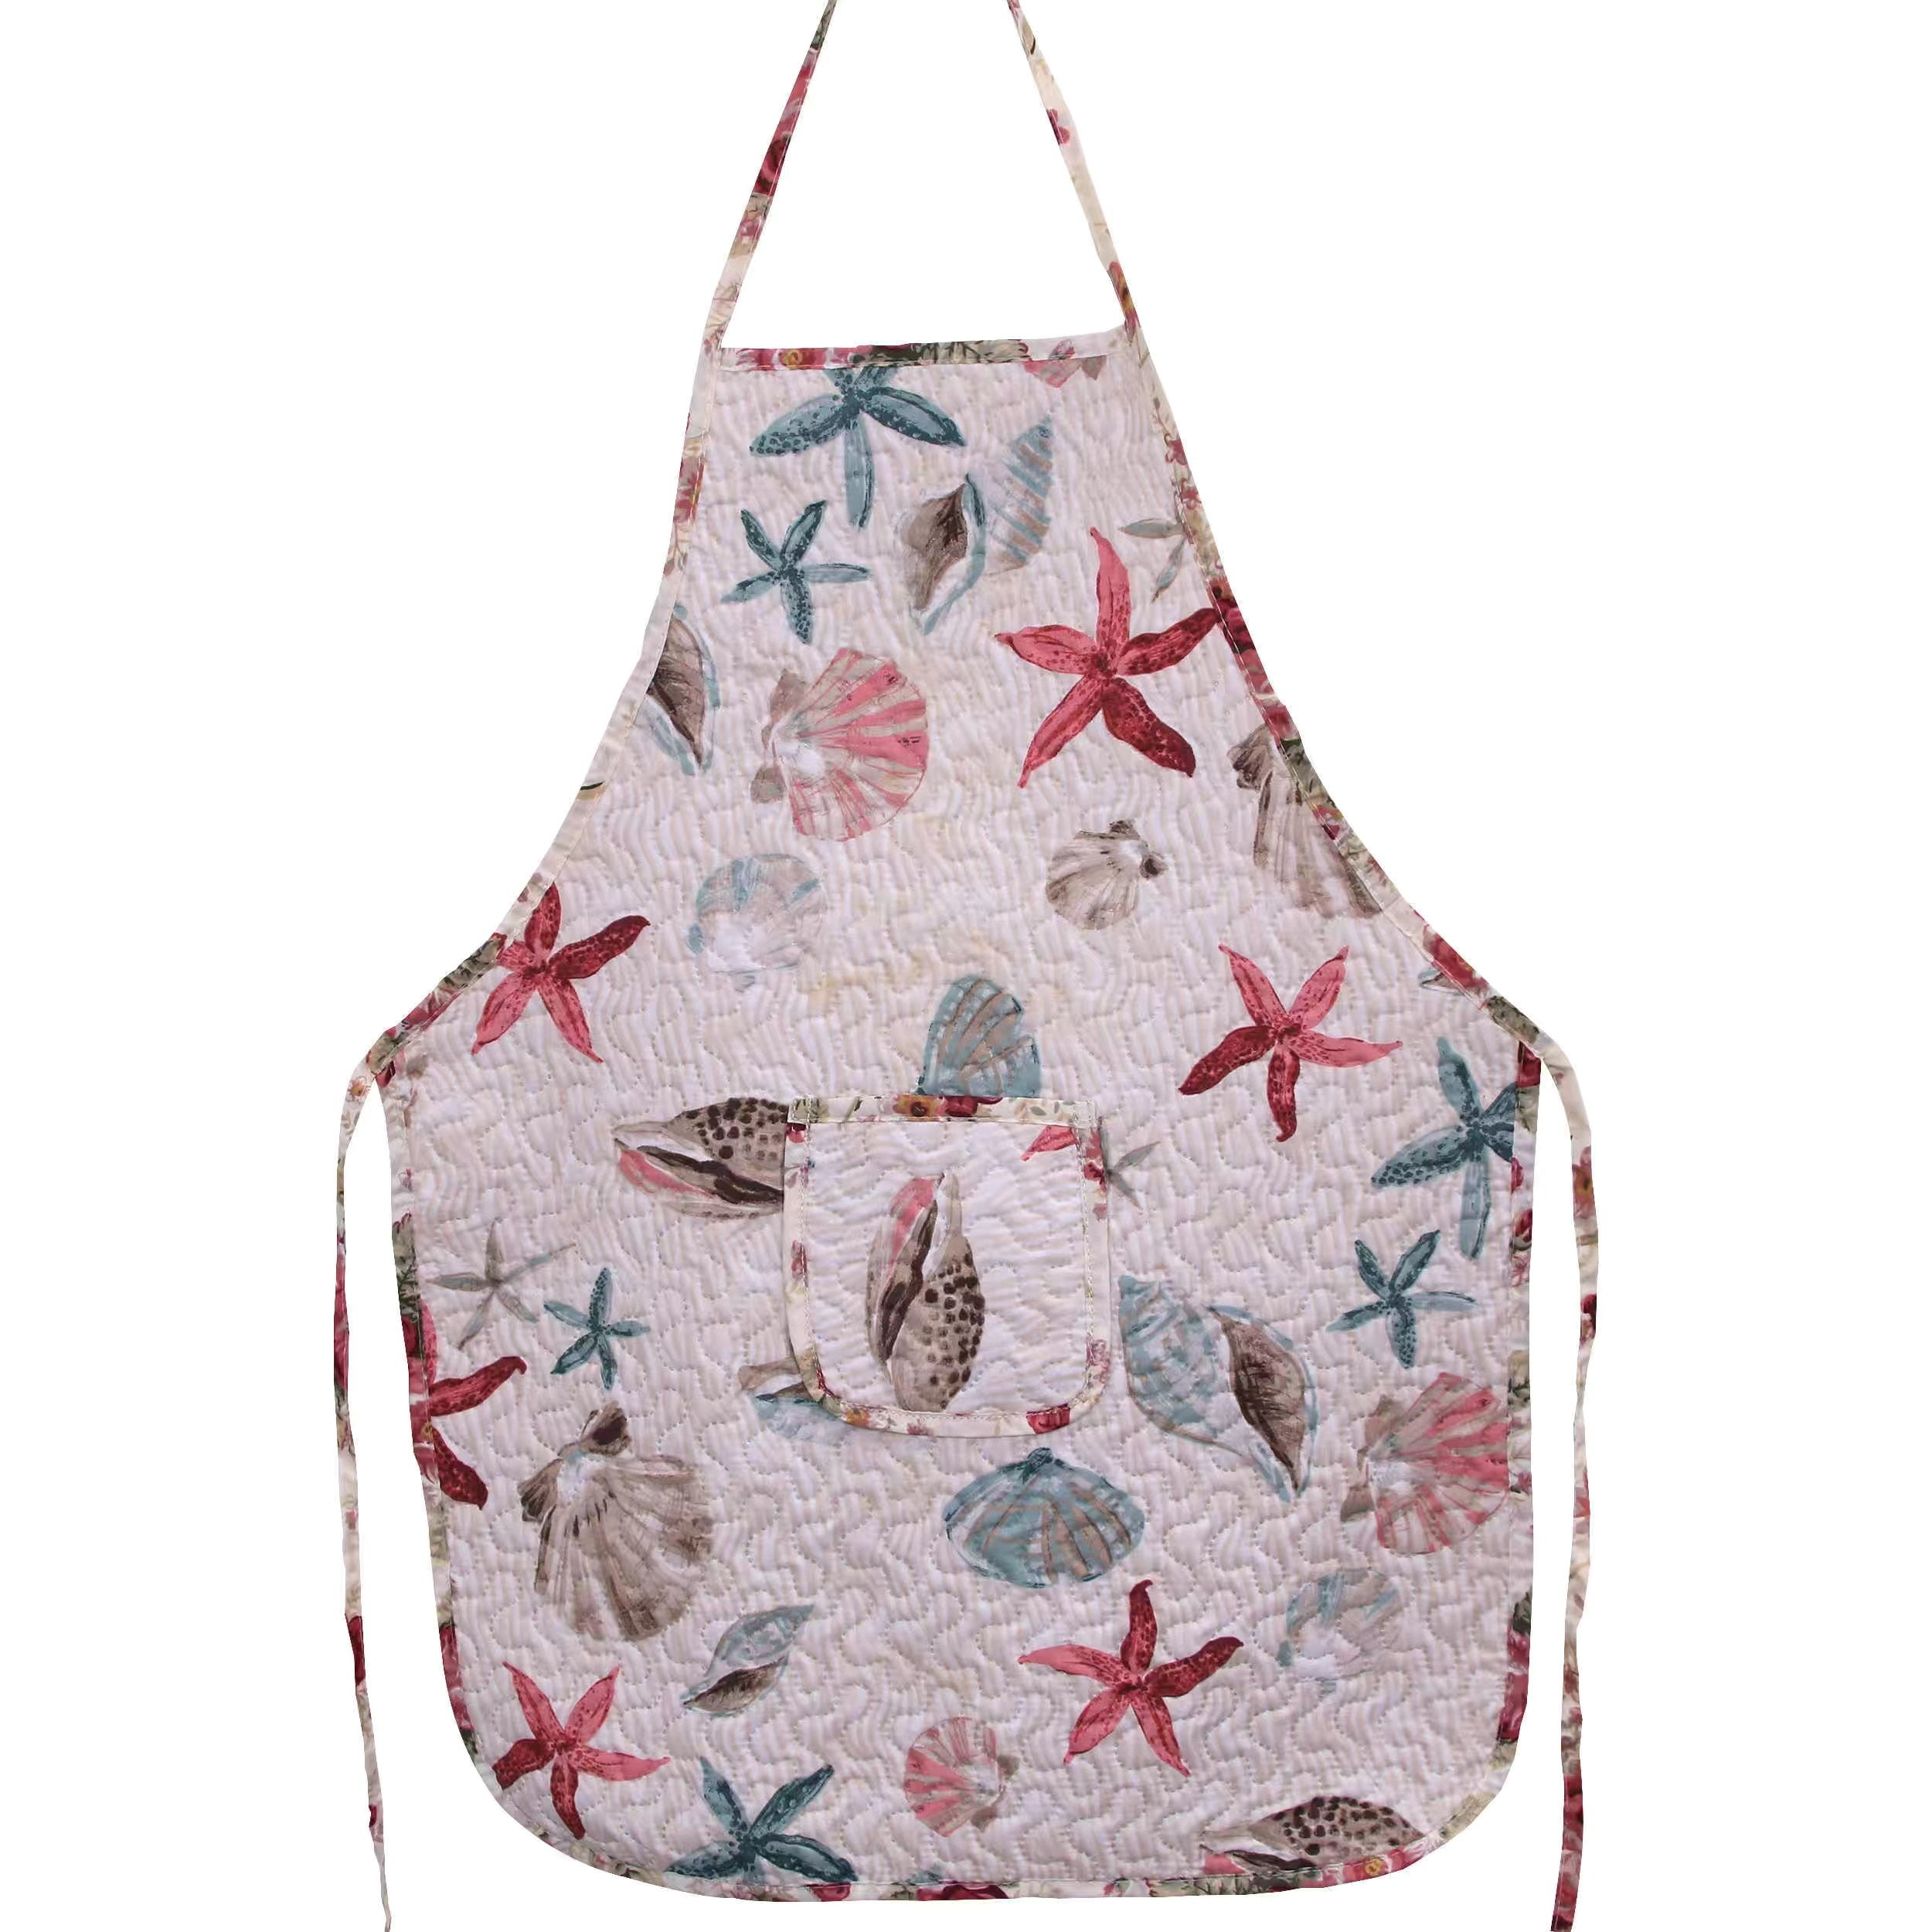 New style quilted apron multi-color rural home anti-fouling thickened water-absorbing floral